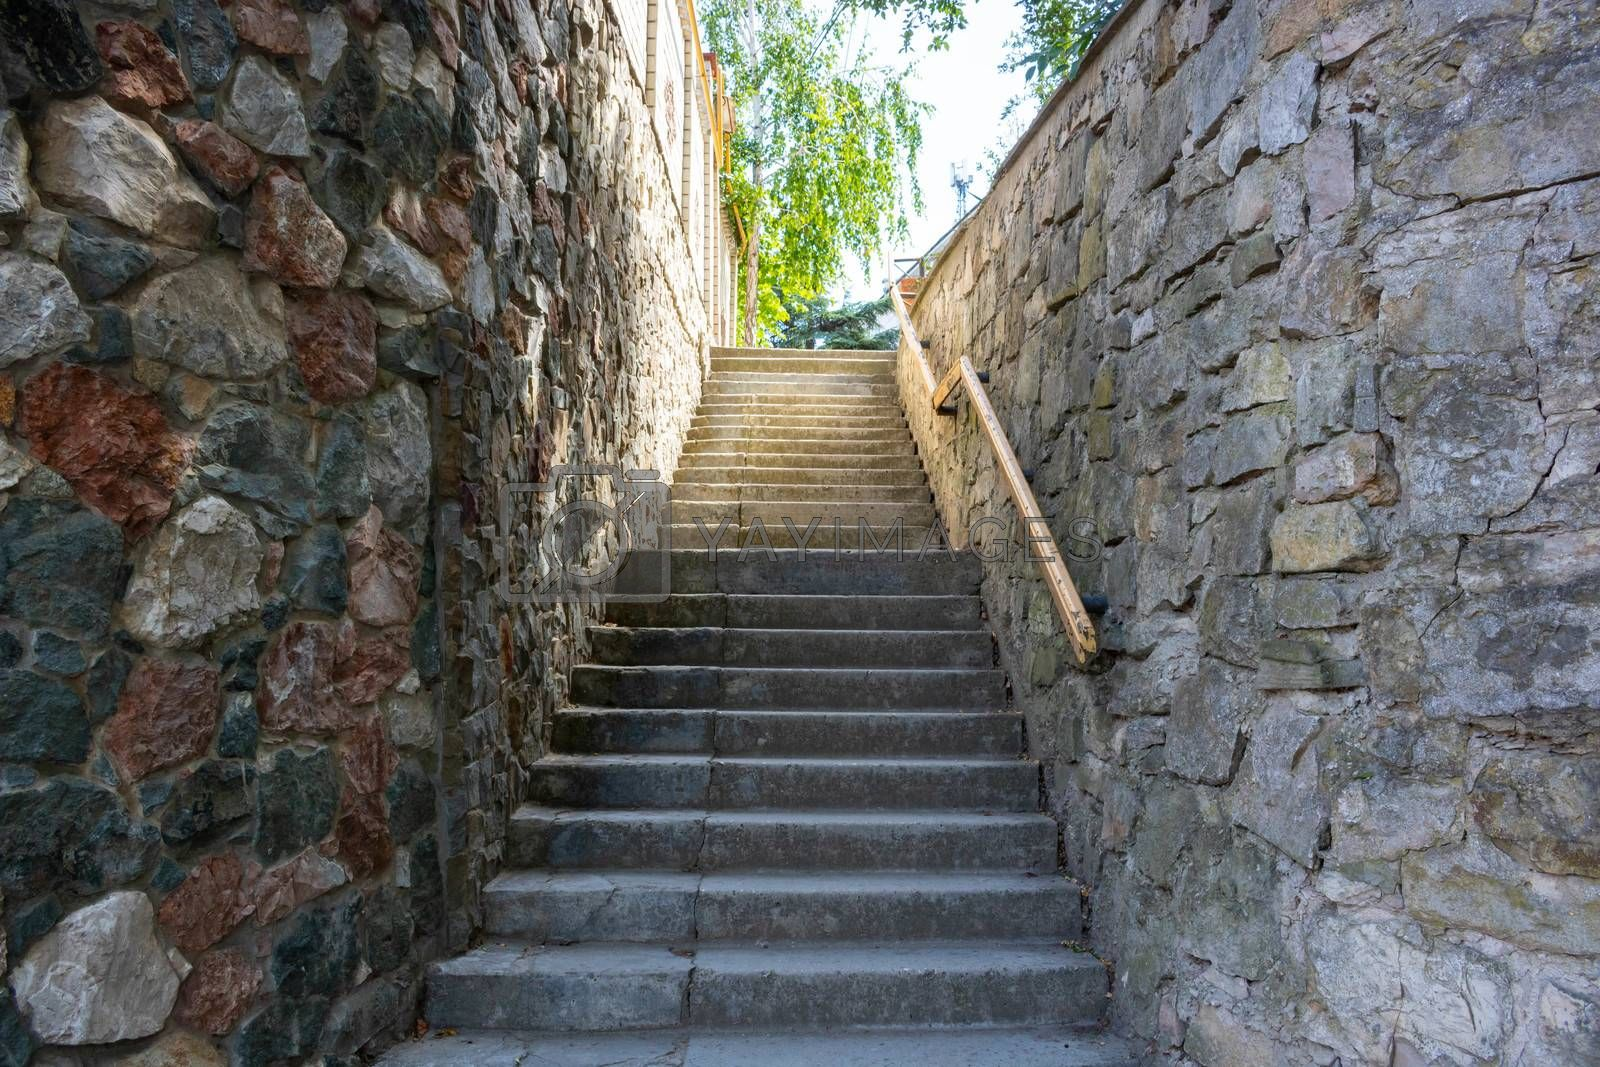 A stone staircase with a railing leading up.Summer day.